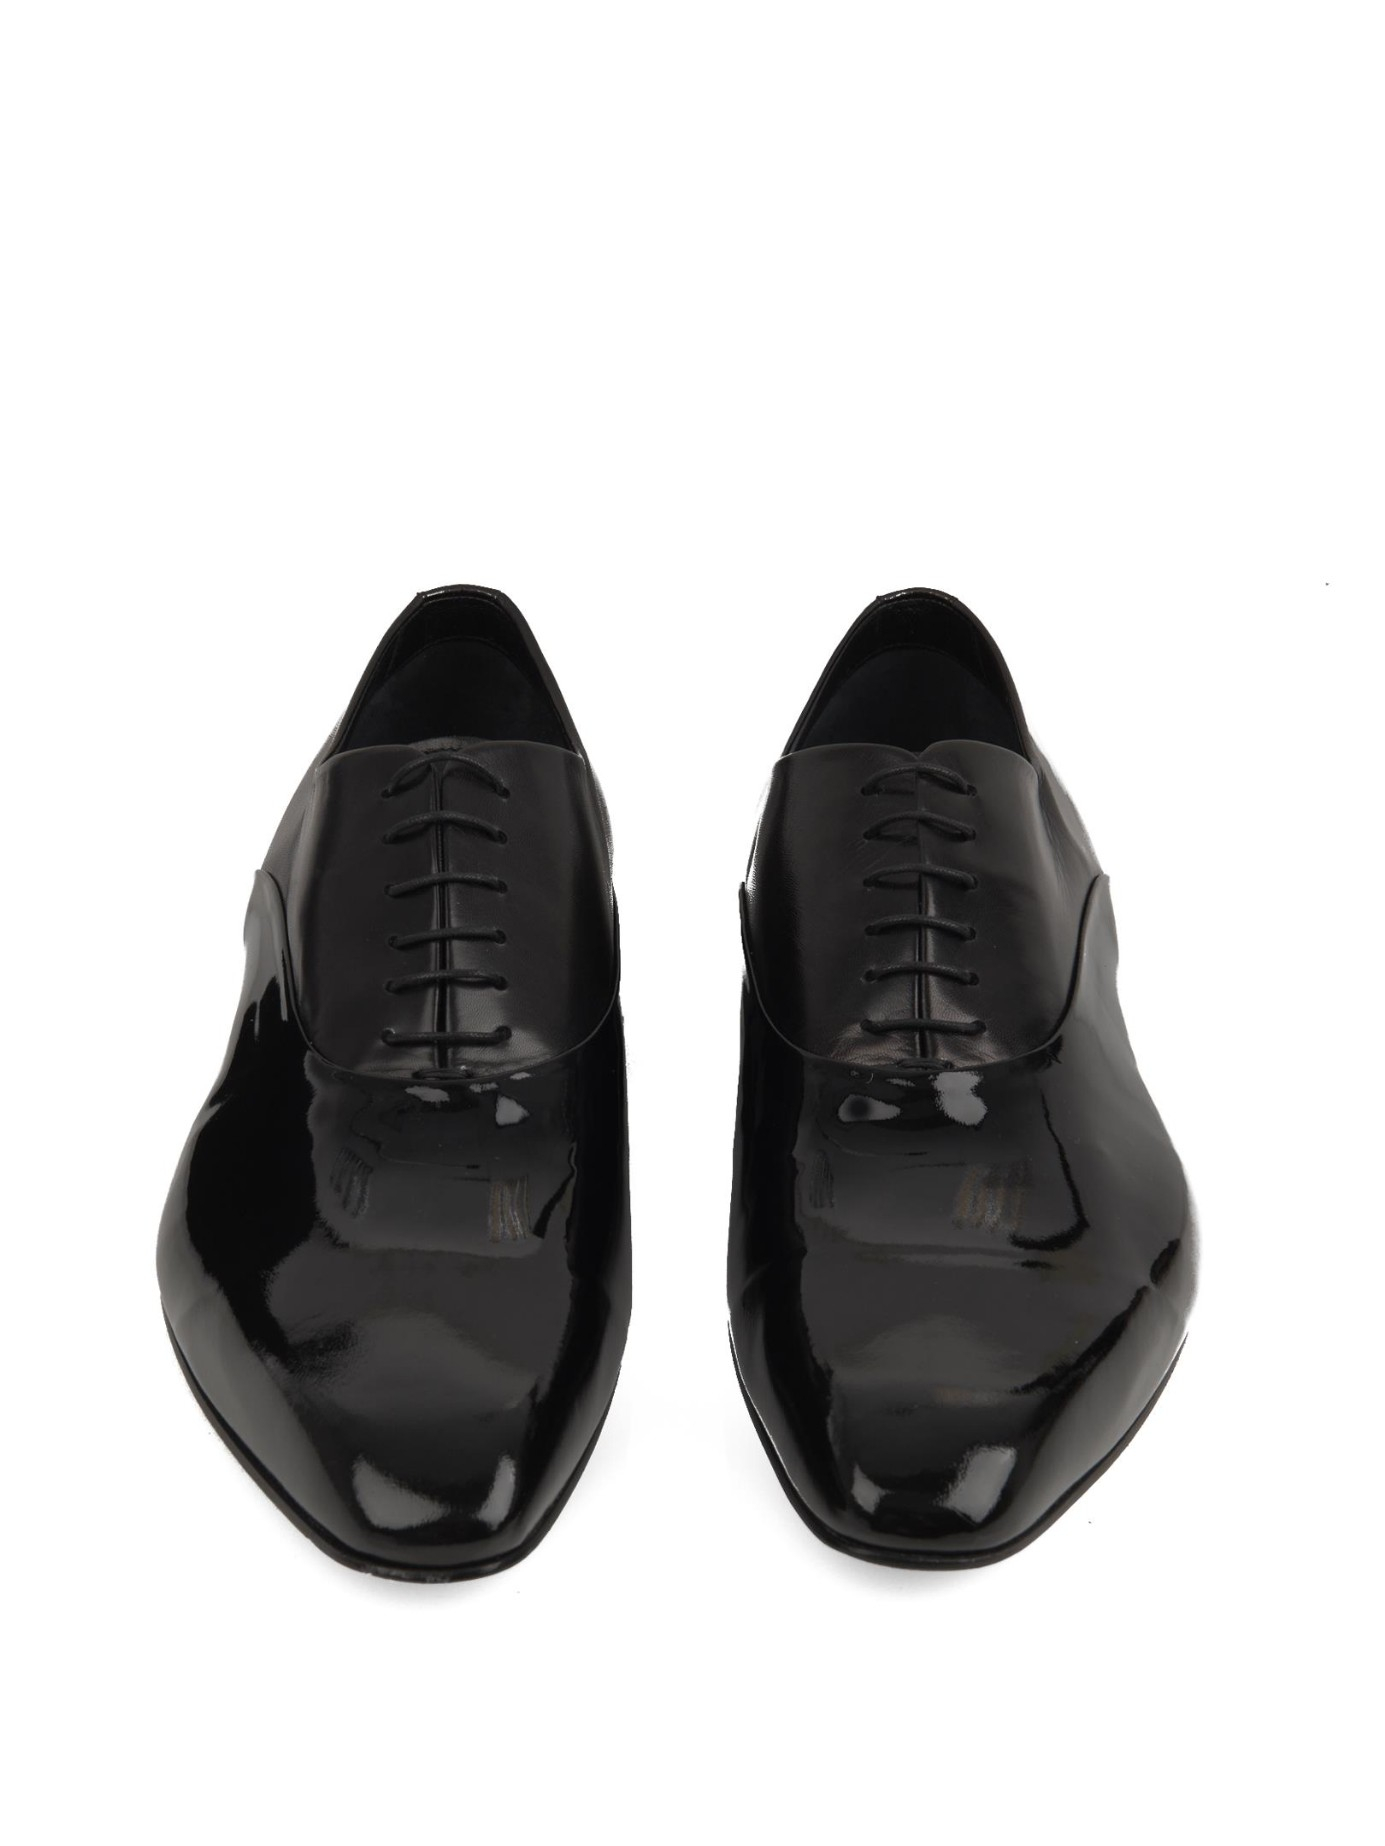 lace-up sneakers - Black Sergio Rossi 63LaS0Mw